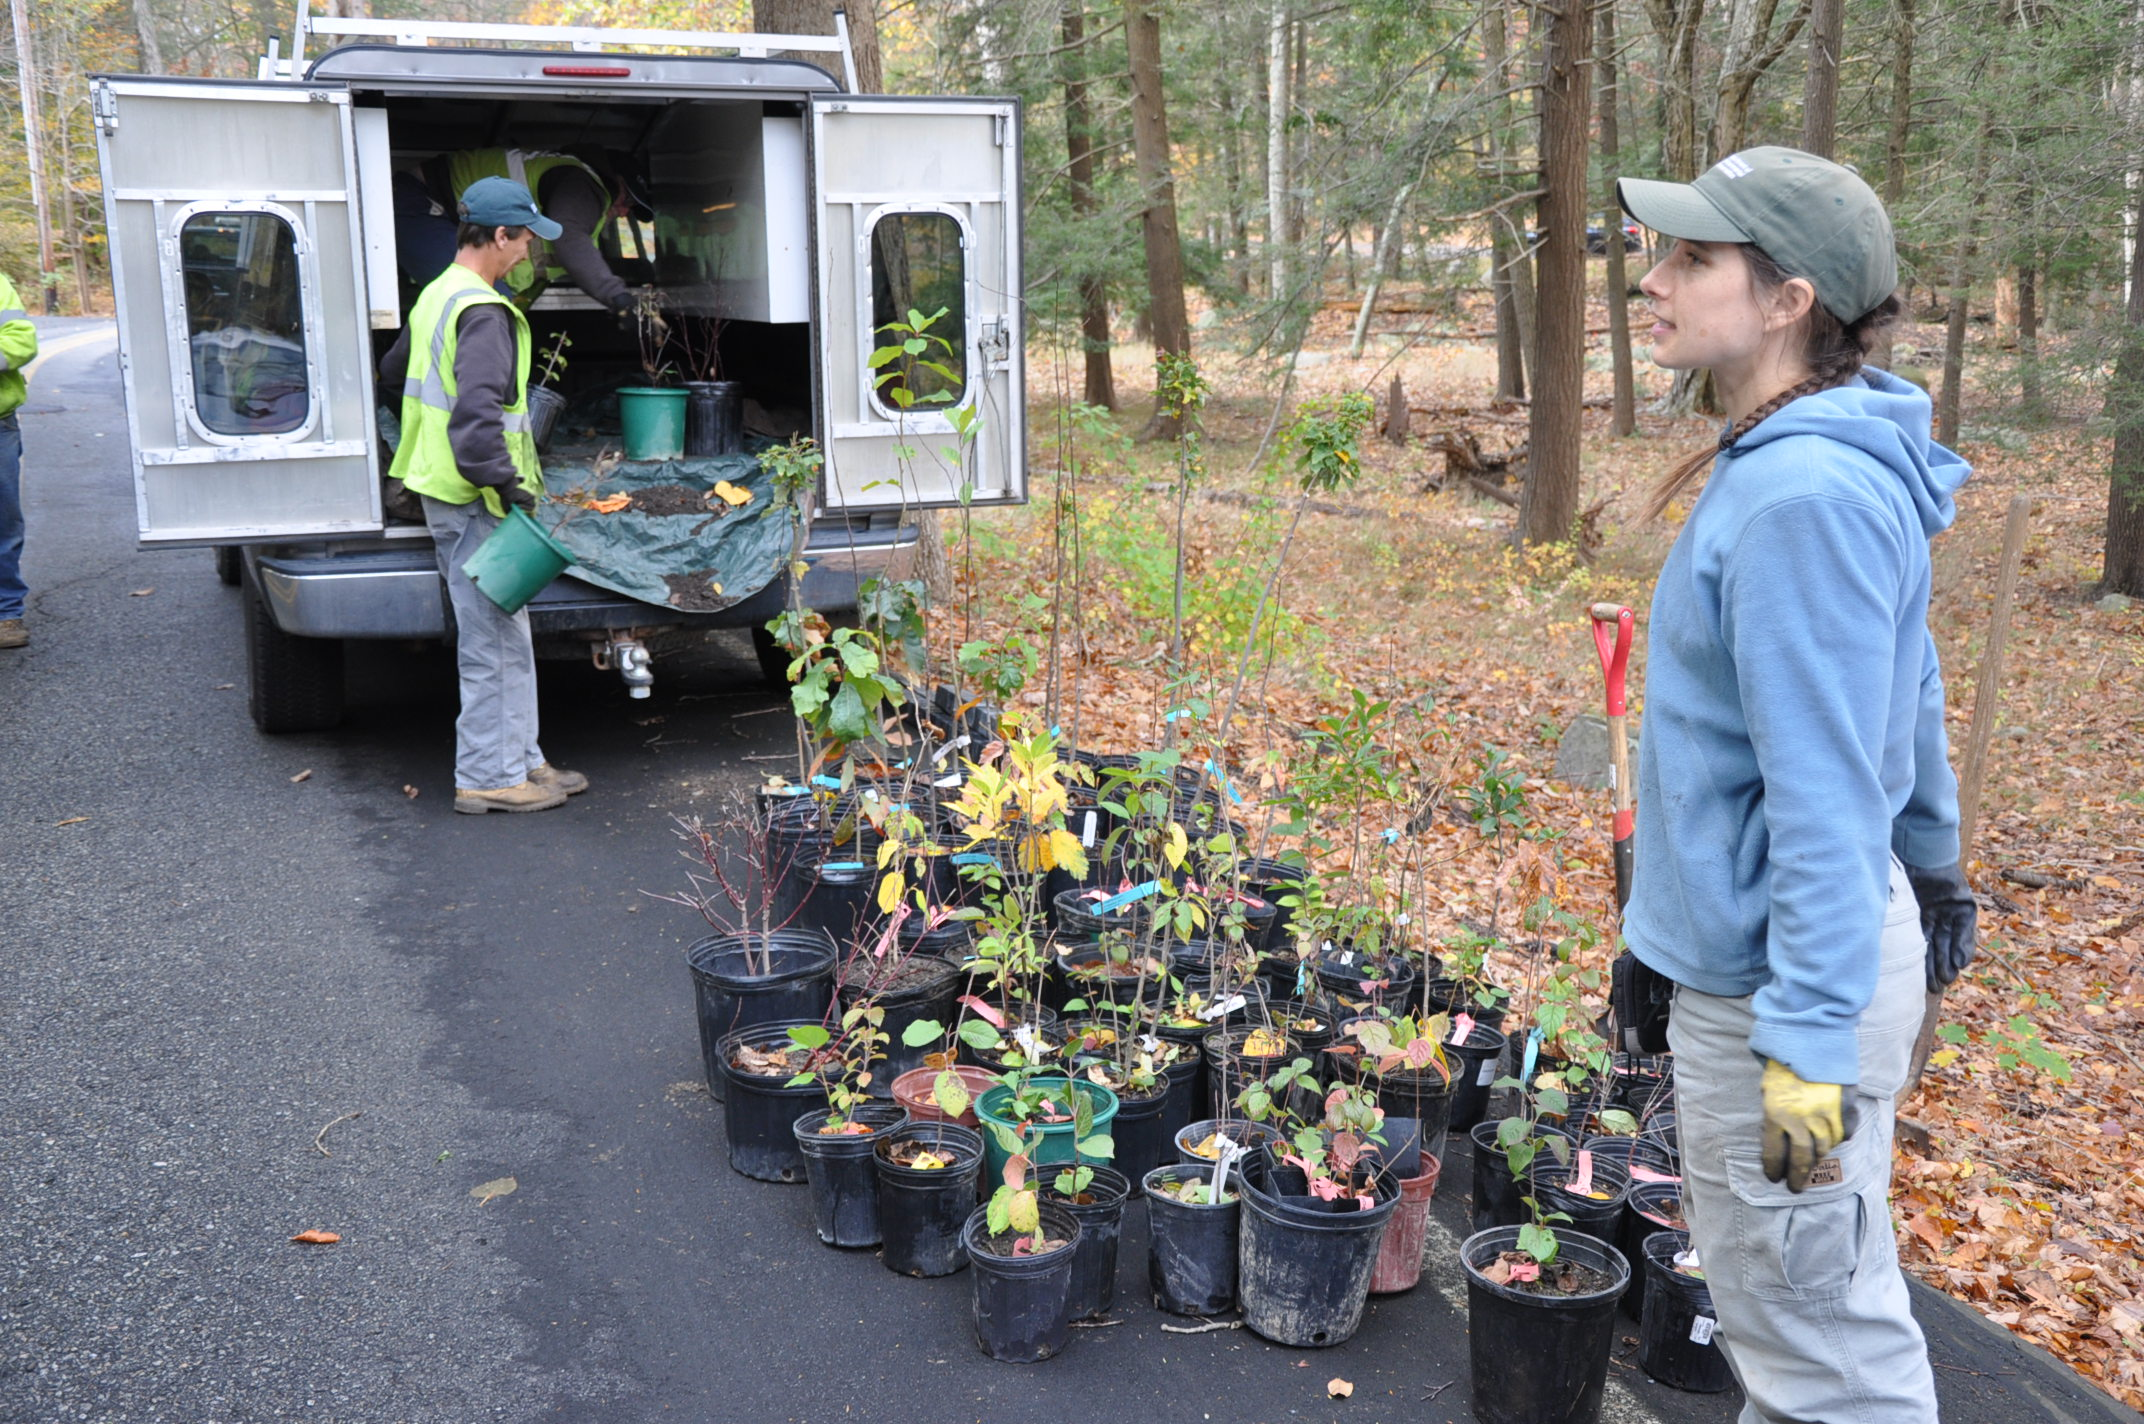 Beth Roessler of the DEC delivered the plants.